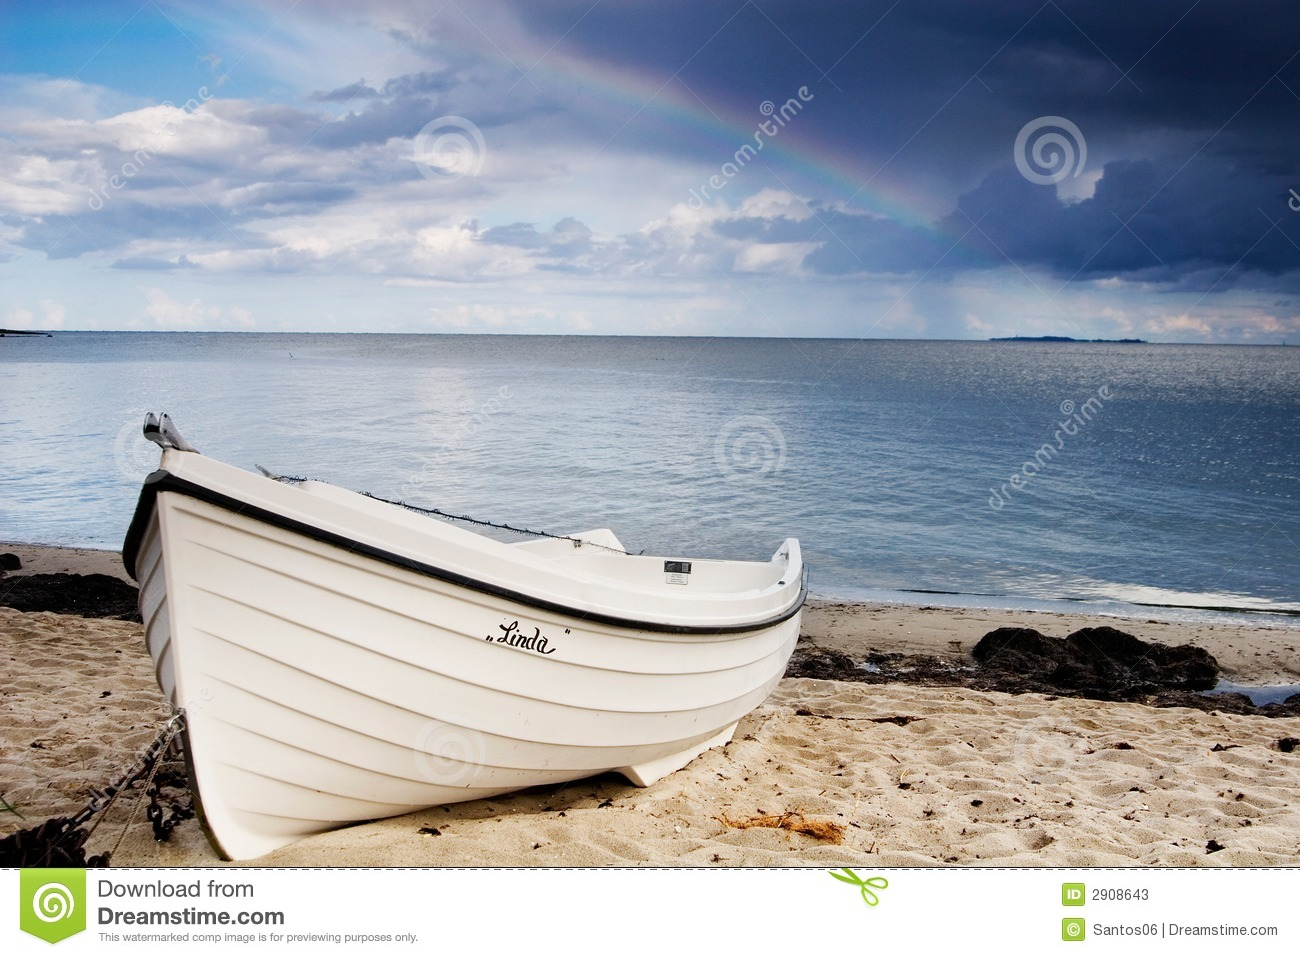 Boat On The Beach Stock Photos - Image: 2908643